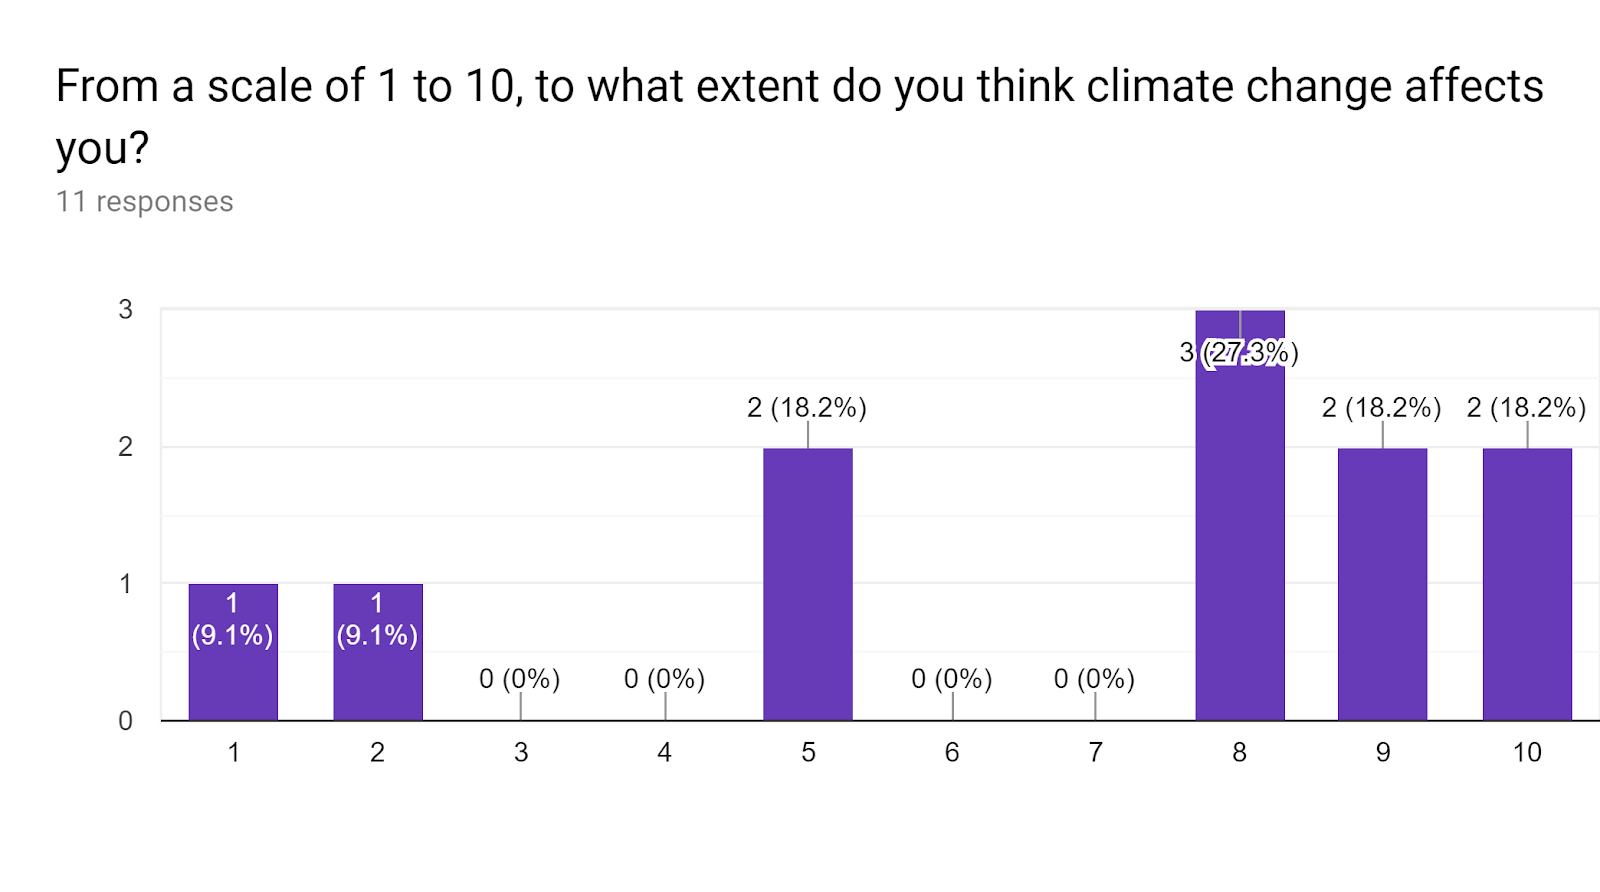 Forms response chart. Question title: From a scale of 1 to 10, to what extent do you think climate change affects you?. Number of responses: 11 responses.